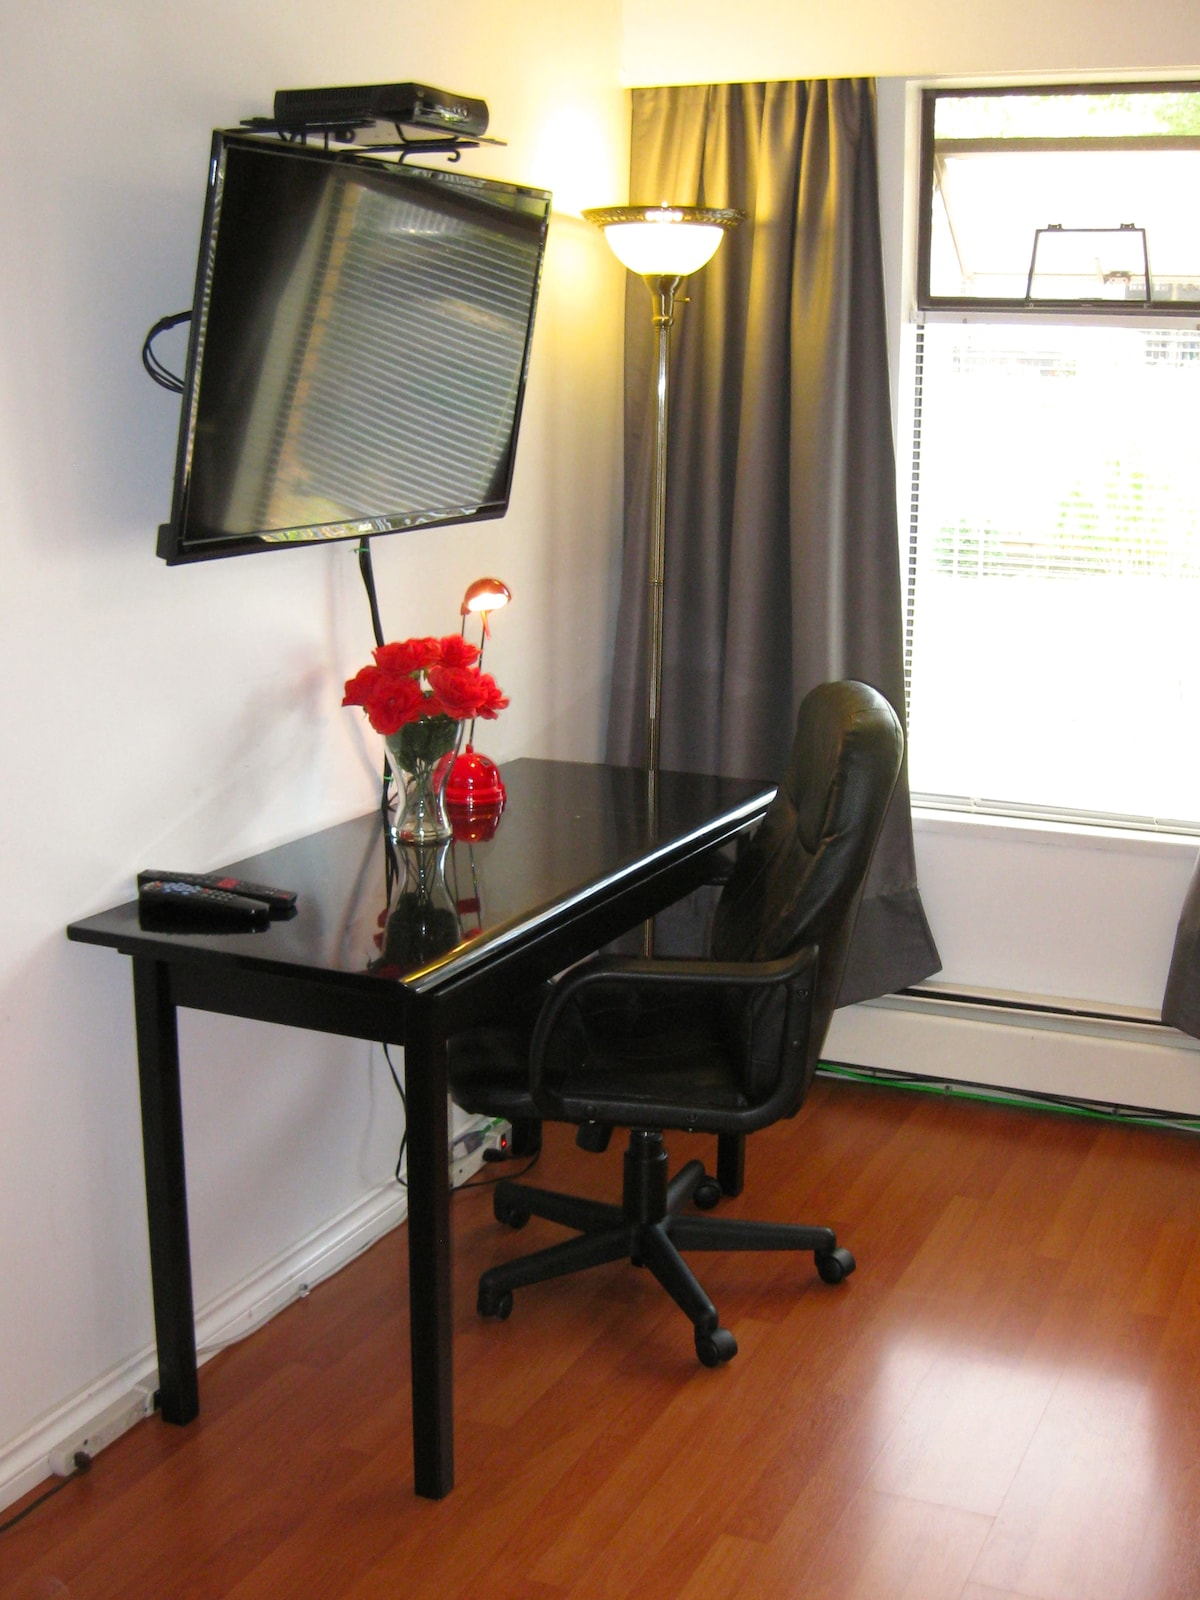 Ample work space on the black, marble desk/table with a comfy office  chair.